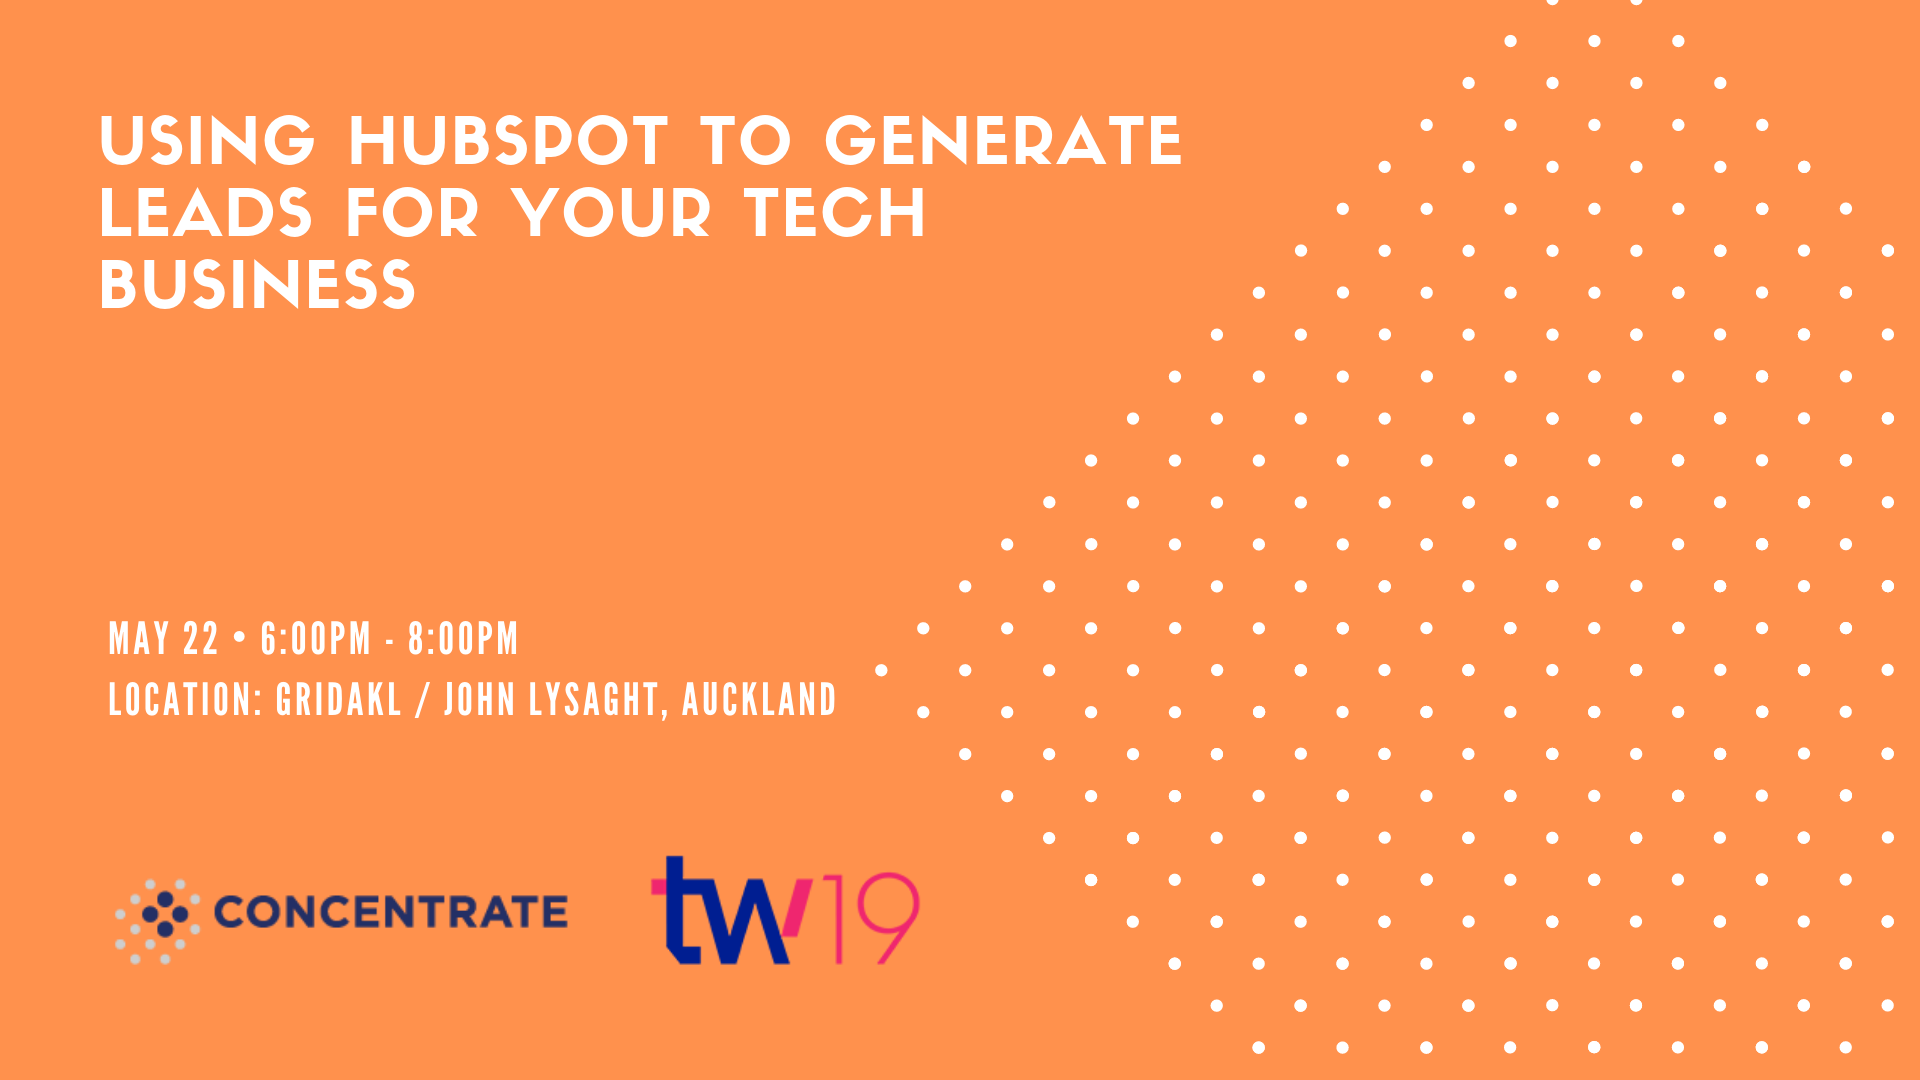 Using HubSpot to generate leads for your tech business-2